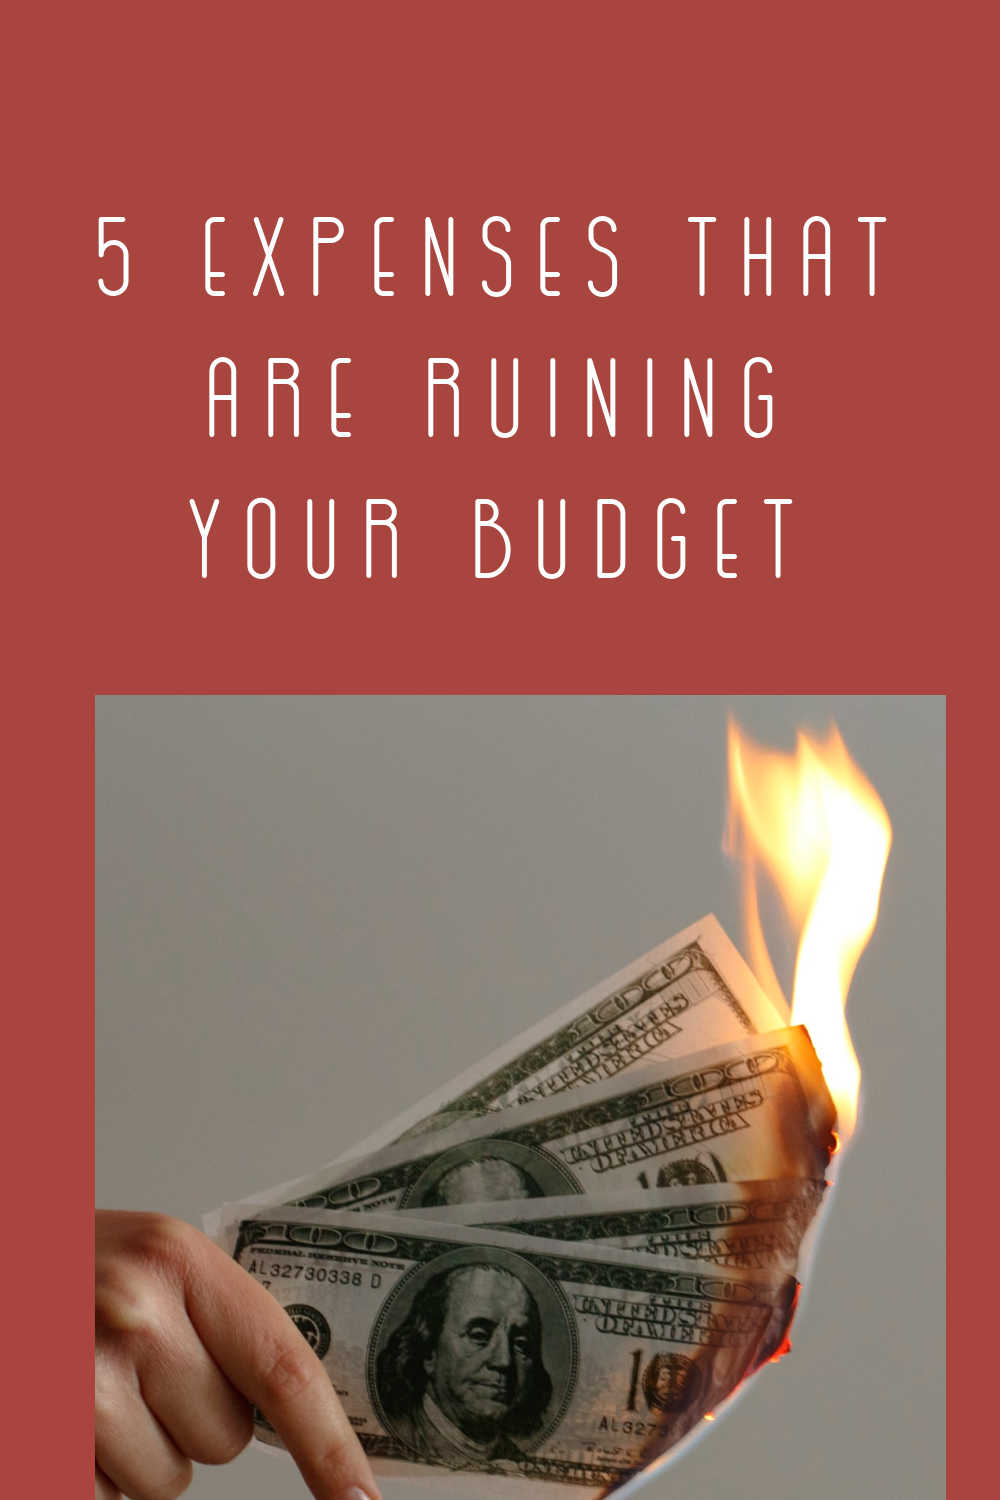 expenses ruin budget